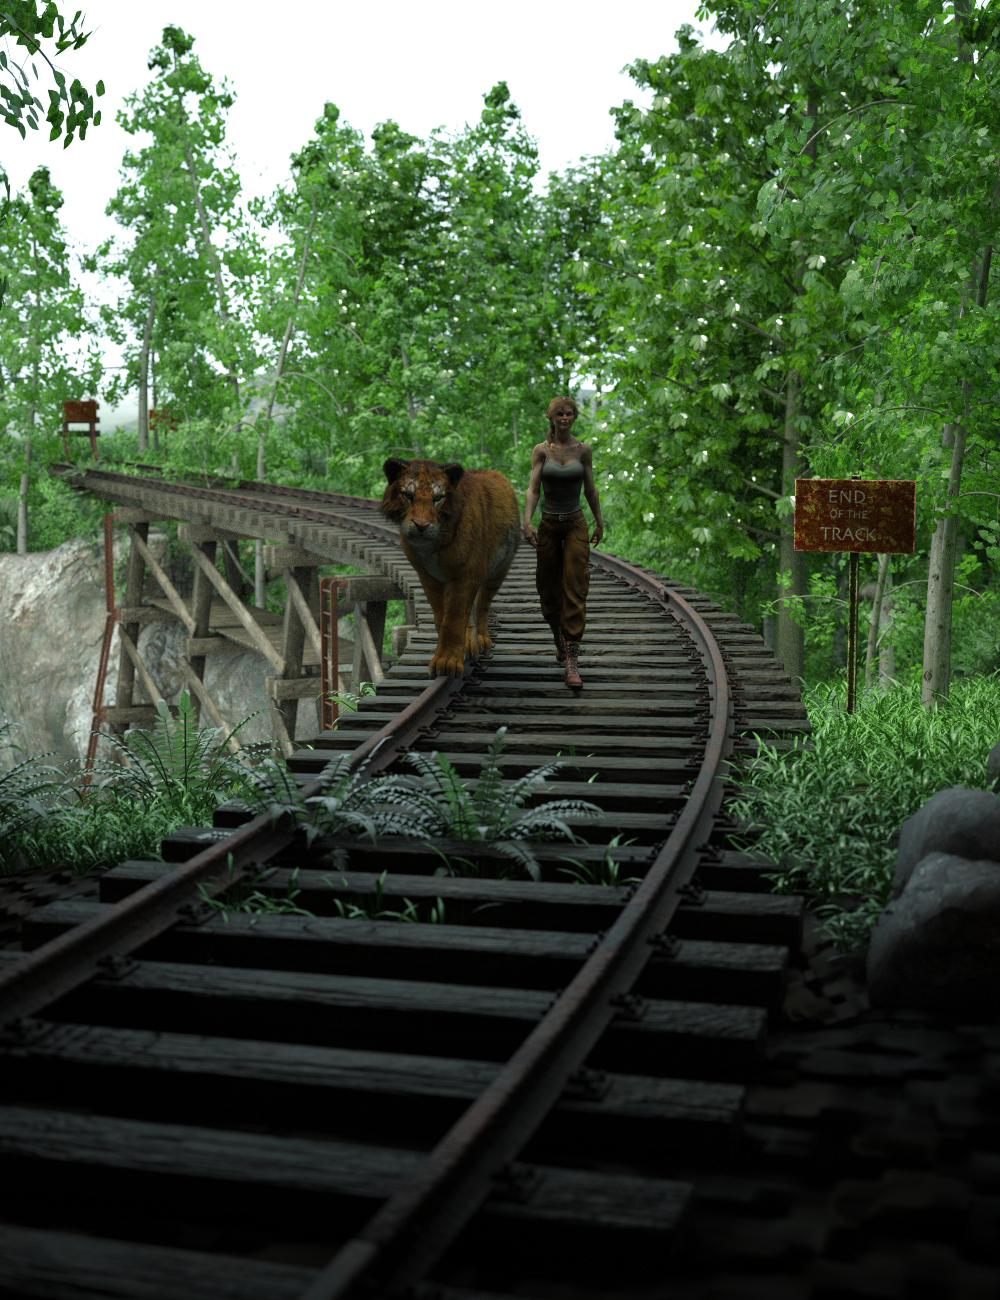 End of the Tracks by: TangoAlpha, 3D Models by Daz 3D